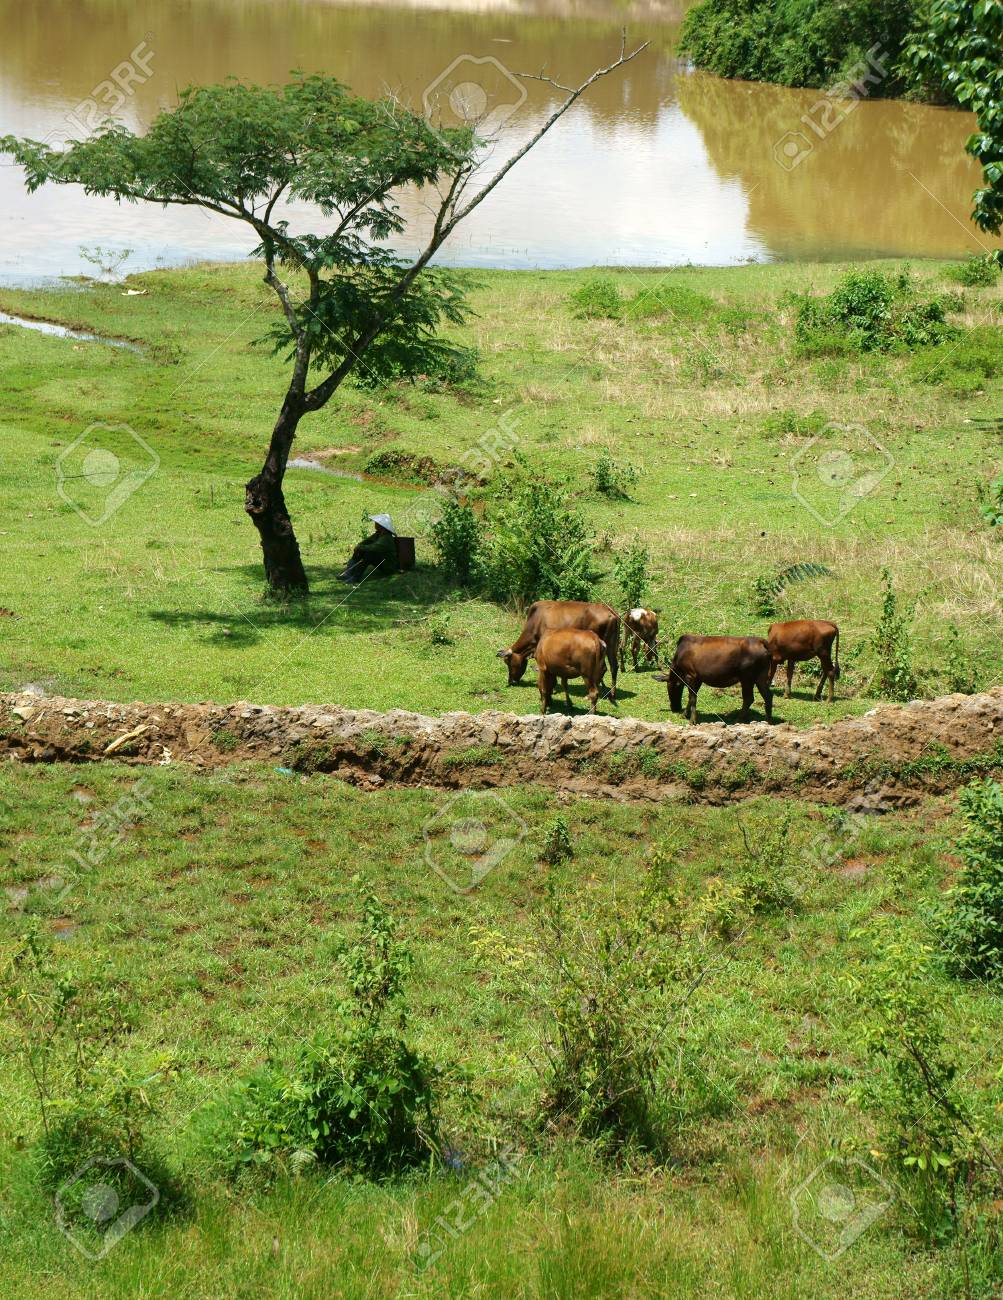 Highland area fit to rear oxen, and they often herd them everywhere to graze Stock Photo - 22056422